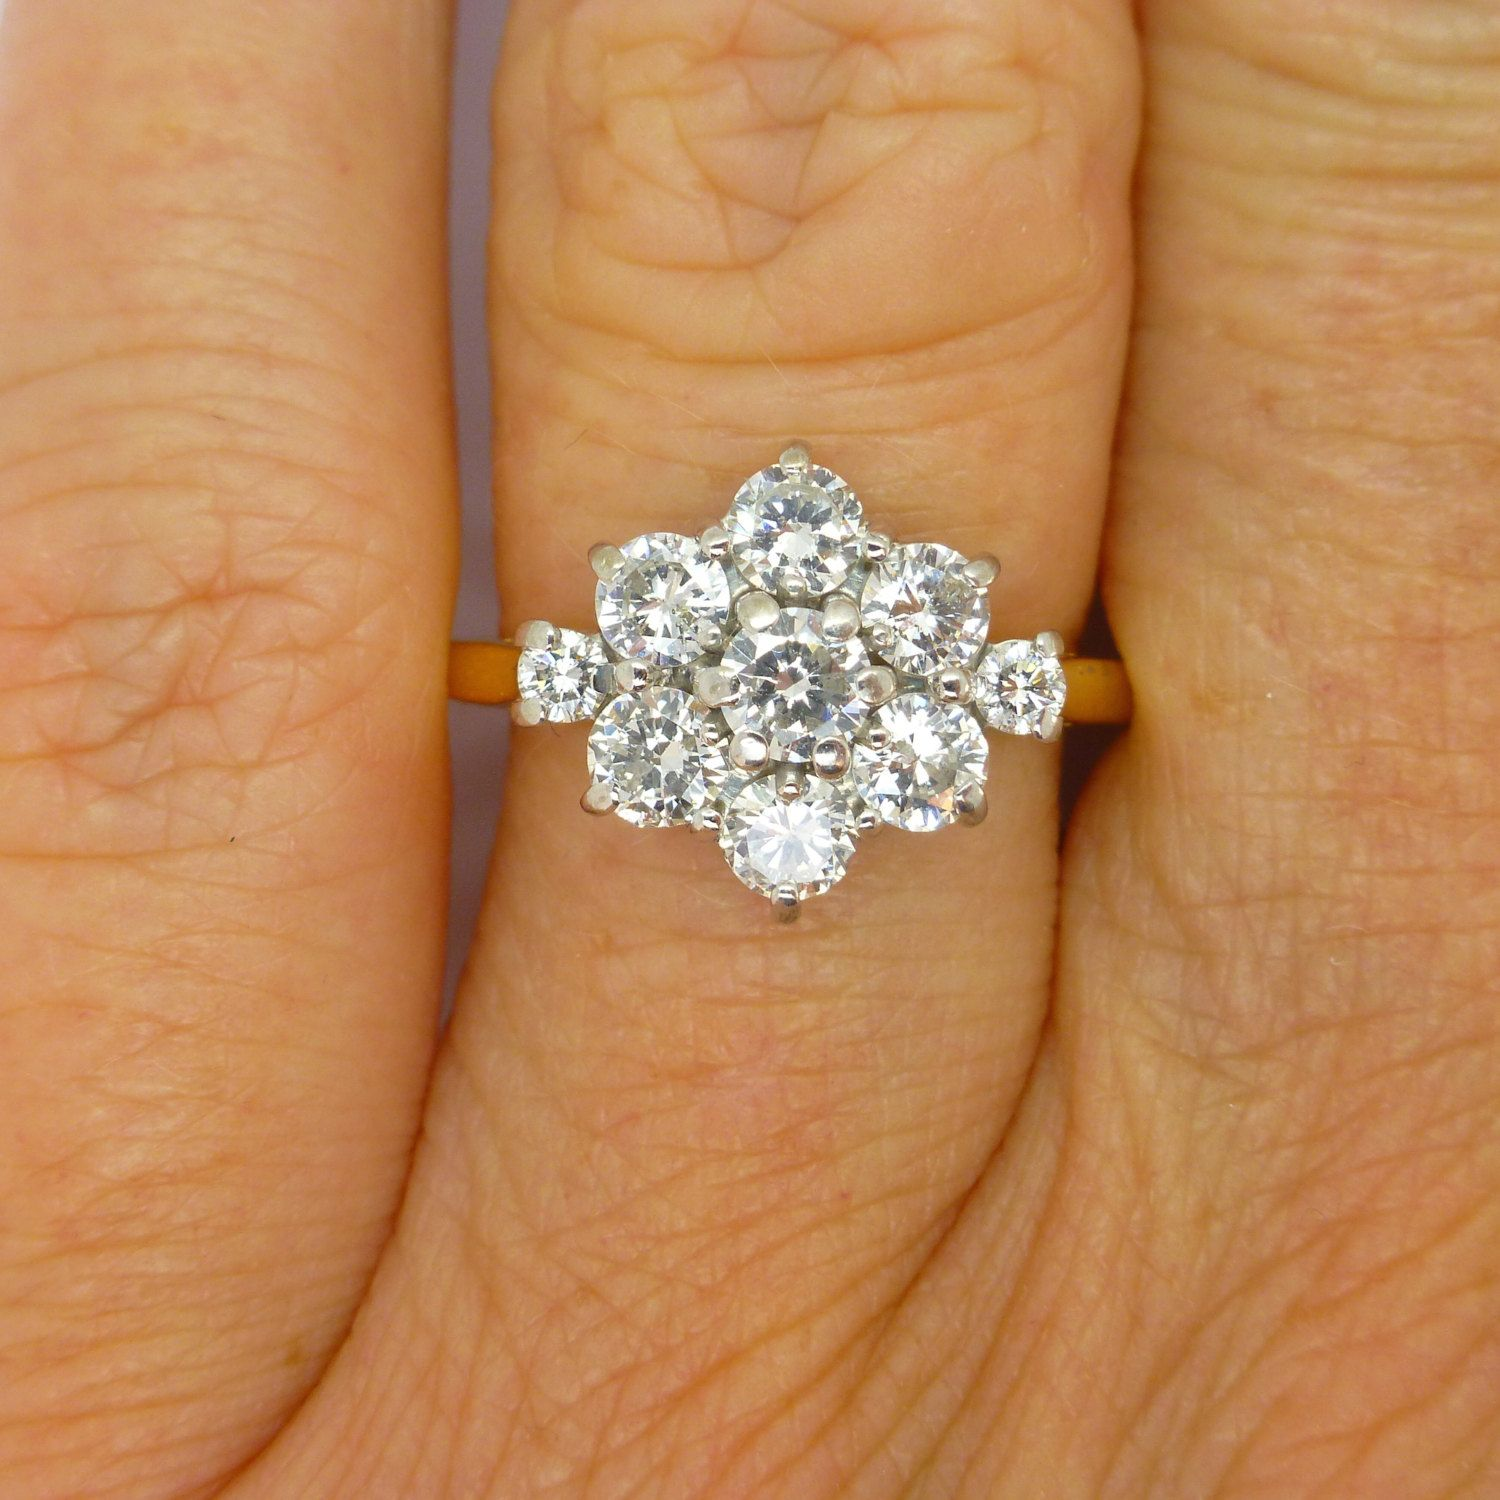 Vintage Diamond Cluster Engagement Ring 18ct18k English Estate Daisy Halo  Flower Dinner Or Cocktail Ring 110tcw